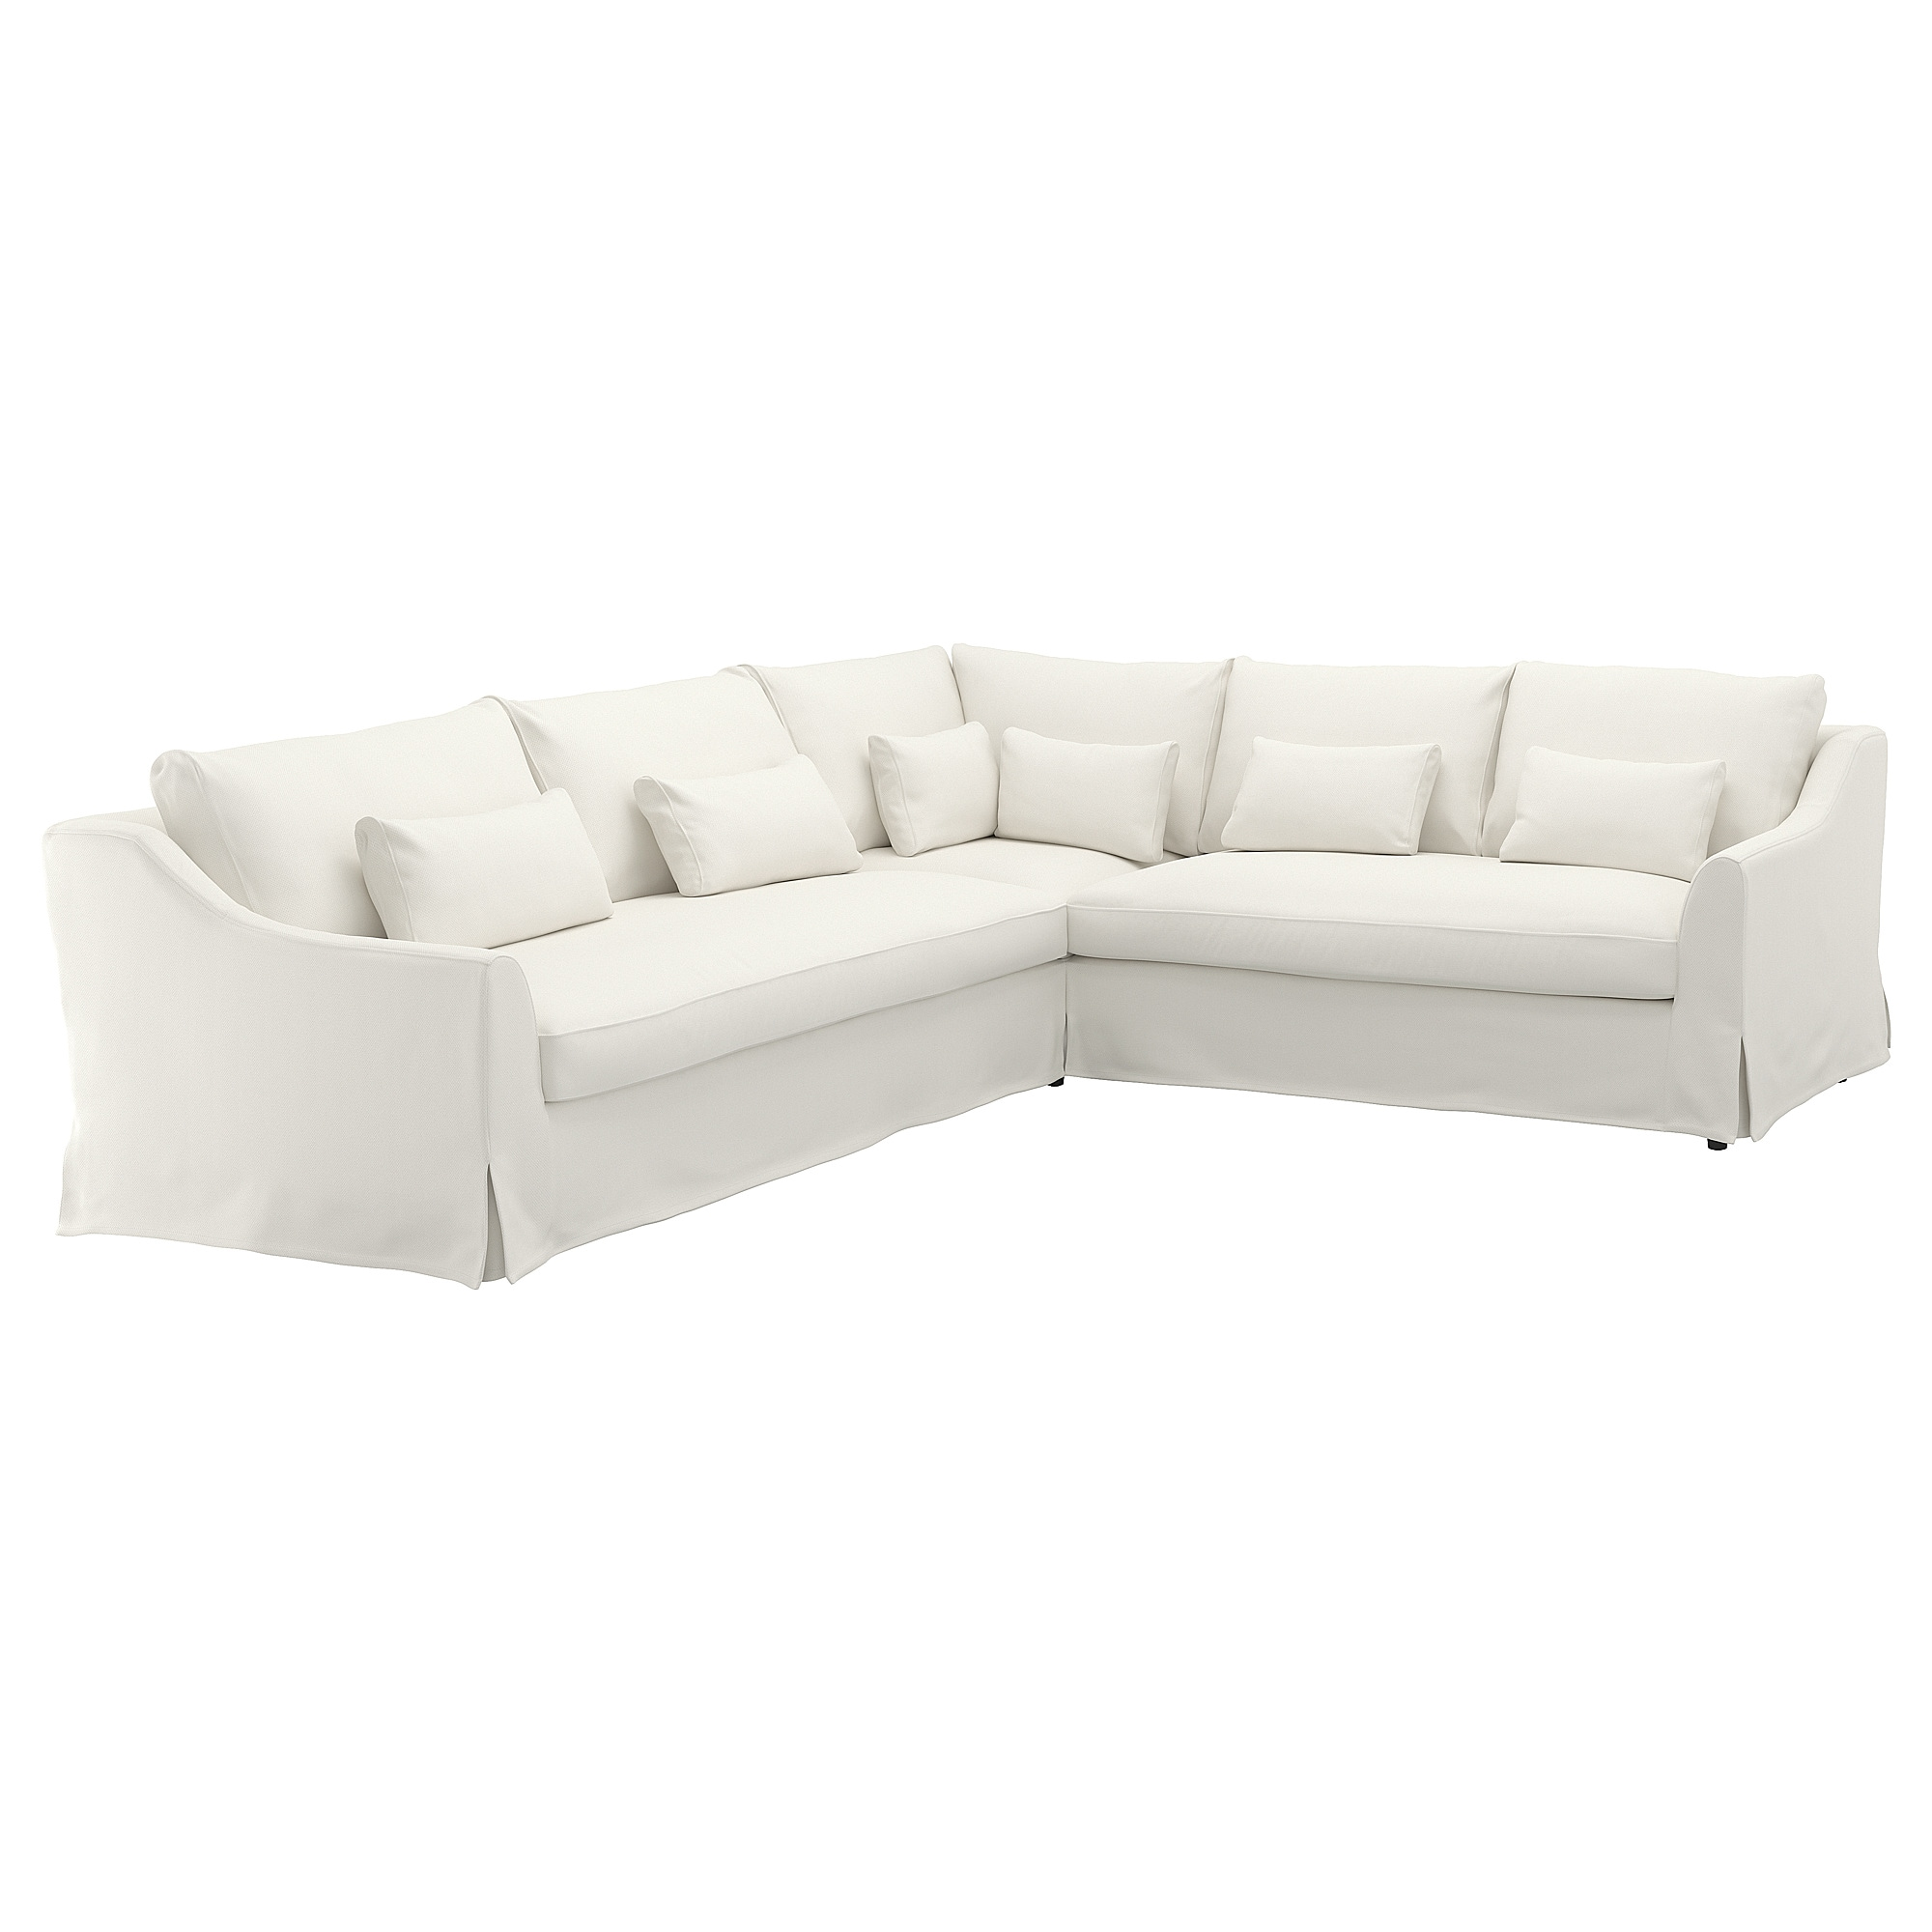 "F""RL–V Sectional cover 5 seat sofa left Flodafors white IKEA"